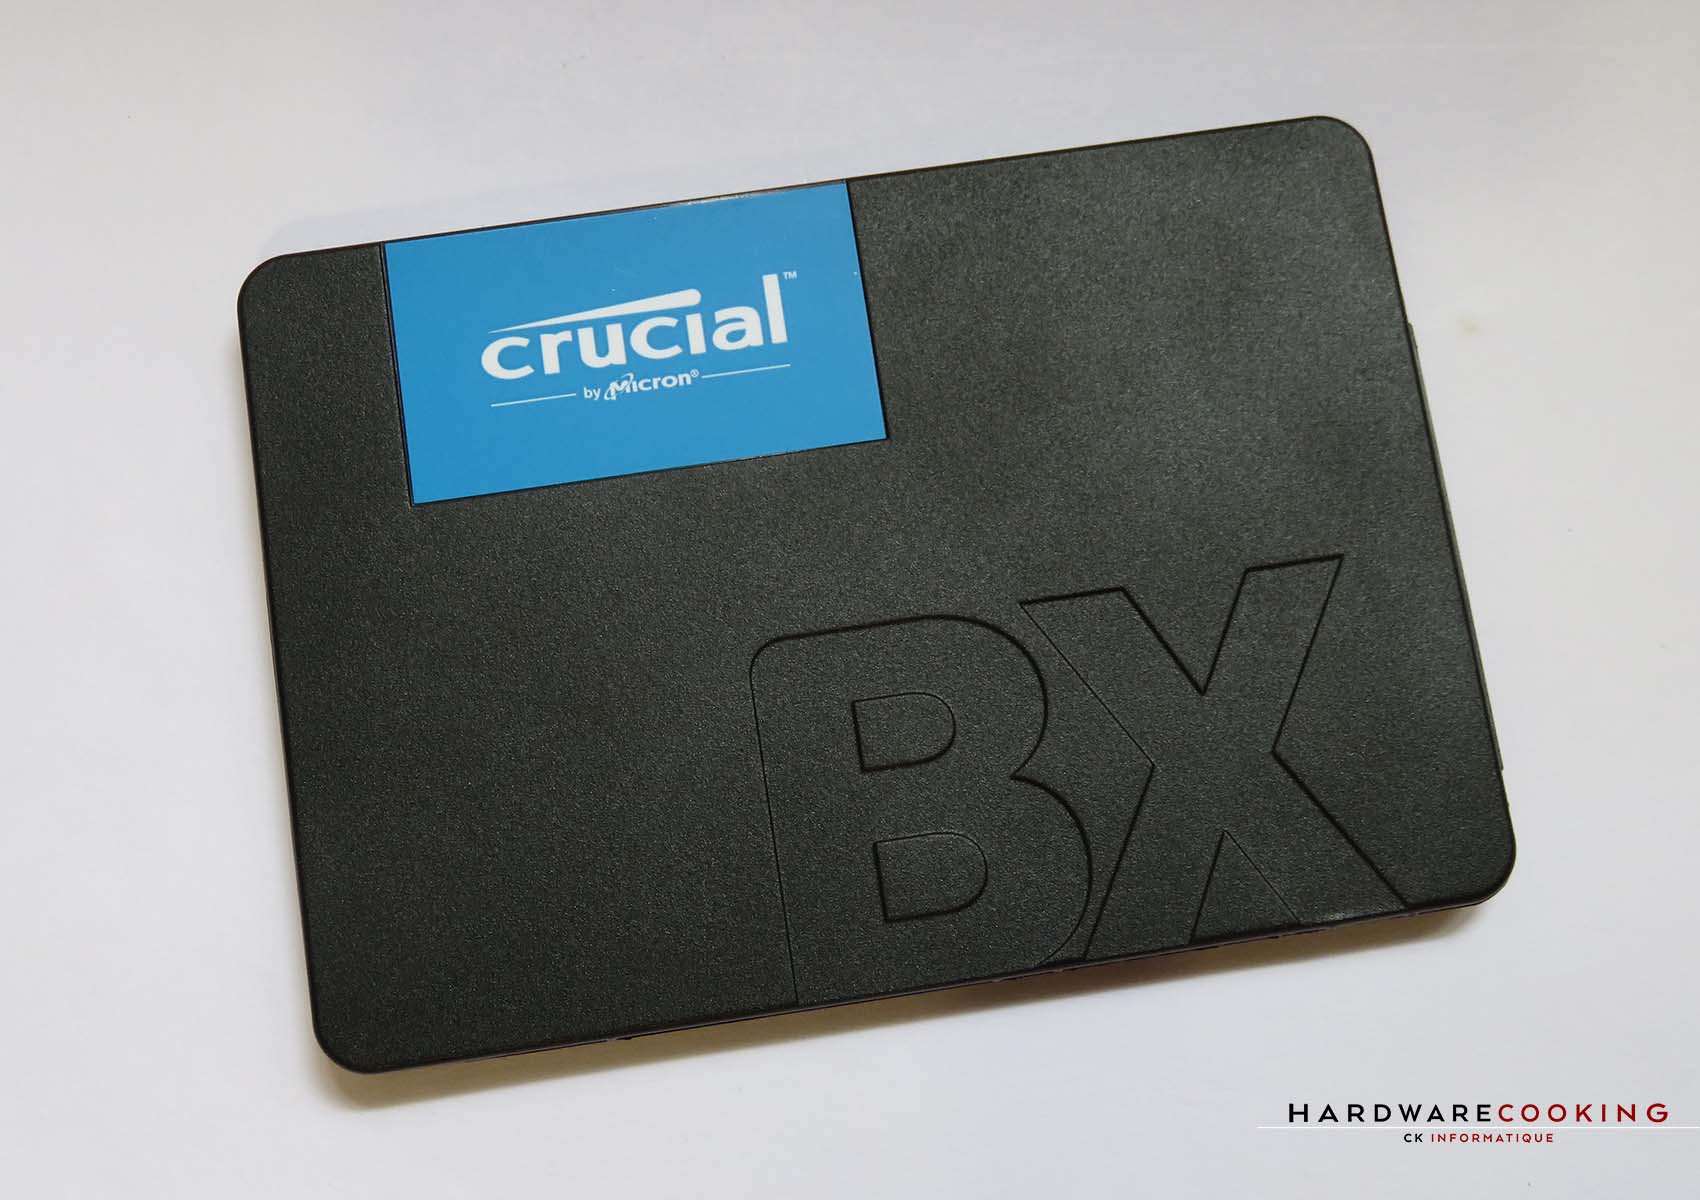 SSD Crucial BX500 face